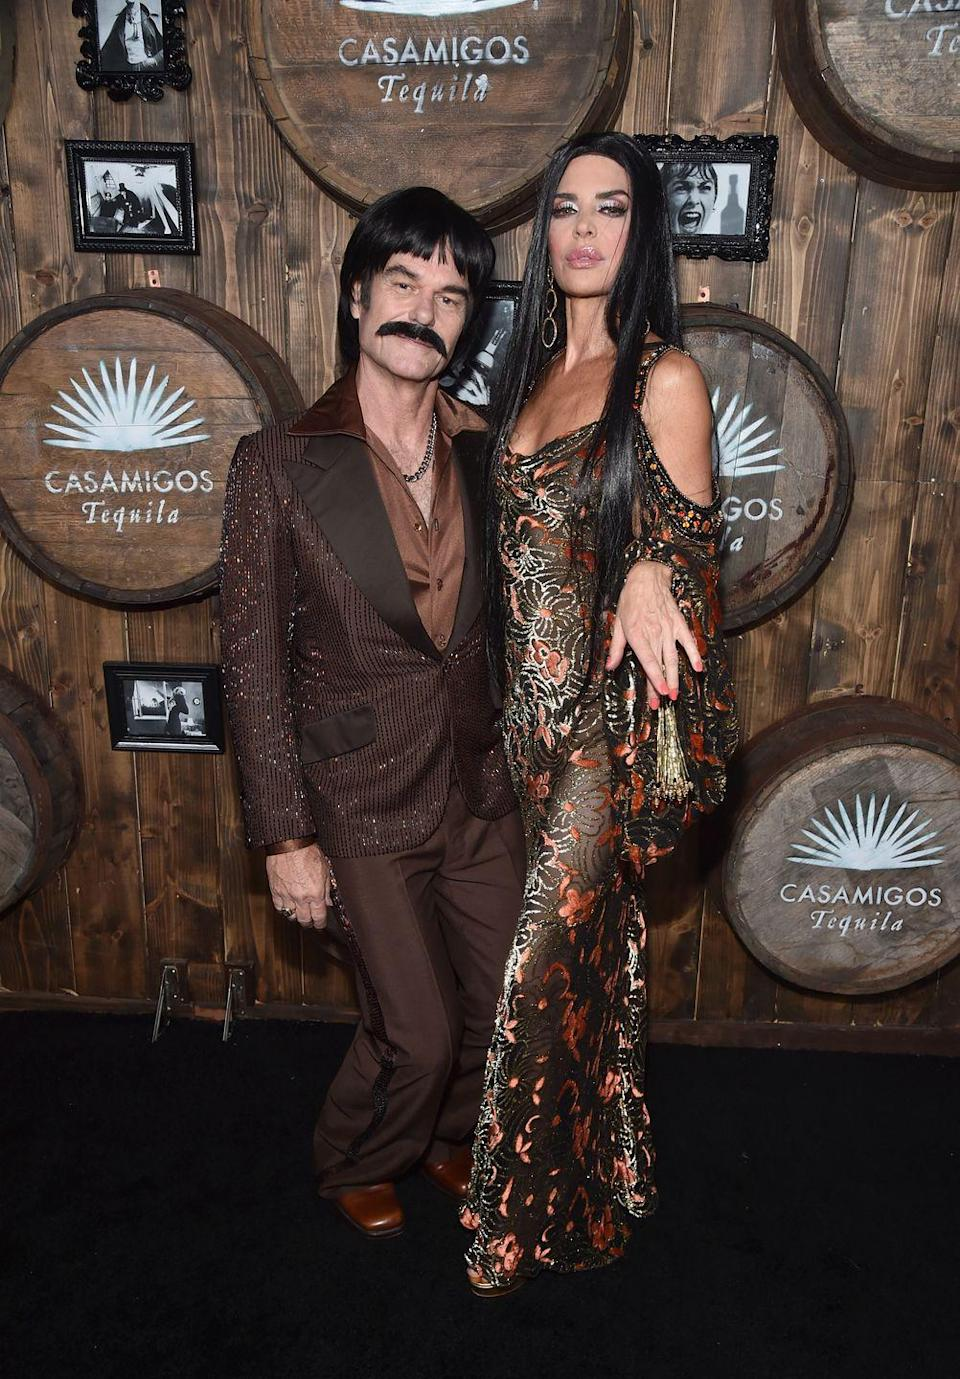 """<p>Coordinating ensembles and a seriously cool mustache will turn you and a friend into the musical duo Sonny and Cher.</p><p><a class=""""link rapid-noclick-resp"""" href=""""https://www.amazon.com/Rubies-Costume-Co-Zapata-Moustache/dp/B002SP102W?tag=syn-yahoo-20&ascsubtag=%5Bartid%7C10070.g.23122163%5Bsrc%7Cyahoo-us"""" rel=""""nofollow noopener"""" target=""""_blank"""" data-ylk=""""slk:SHOP MUSTACHE"""">SHOP MUSTACHE</a></p><p><a class=""""link rapid-noclick-resp"""" href=""""https://www.amazon.com/ALLAURA-Straight-Morticia-Costume-Halloween/dp/B077NNBPP5?tag=syn-yahoo-20&ascsubtag=%5Bartid%7C10070.g.23122163%5Bsrc%7Cyahoo-us"""" rel=""""nofollow noopener"""" target=""""_blank"""" data-ylk=""""slk:SHOP WIG"""">SHOP WIG</a></p>"""